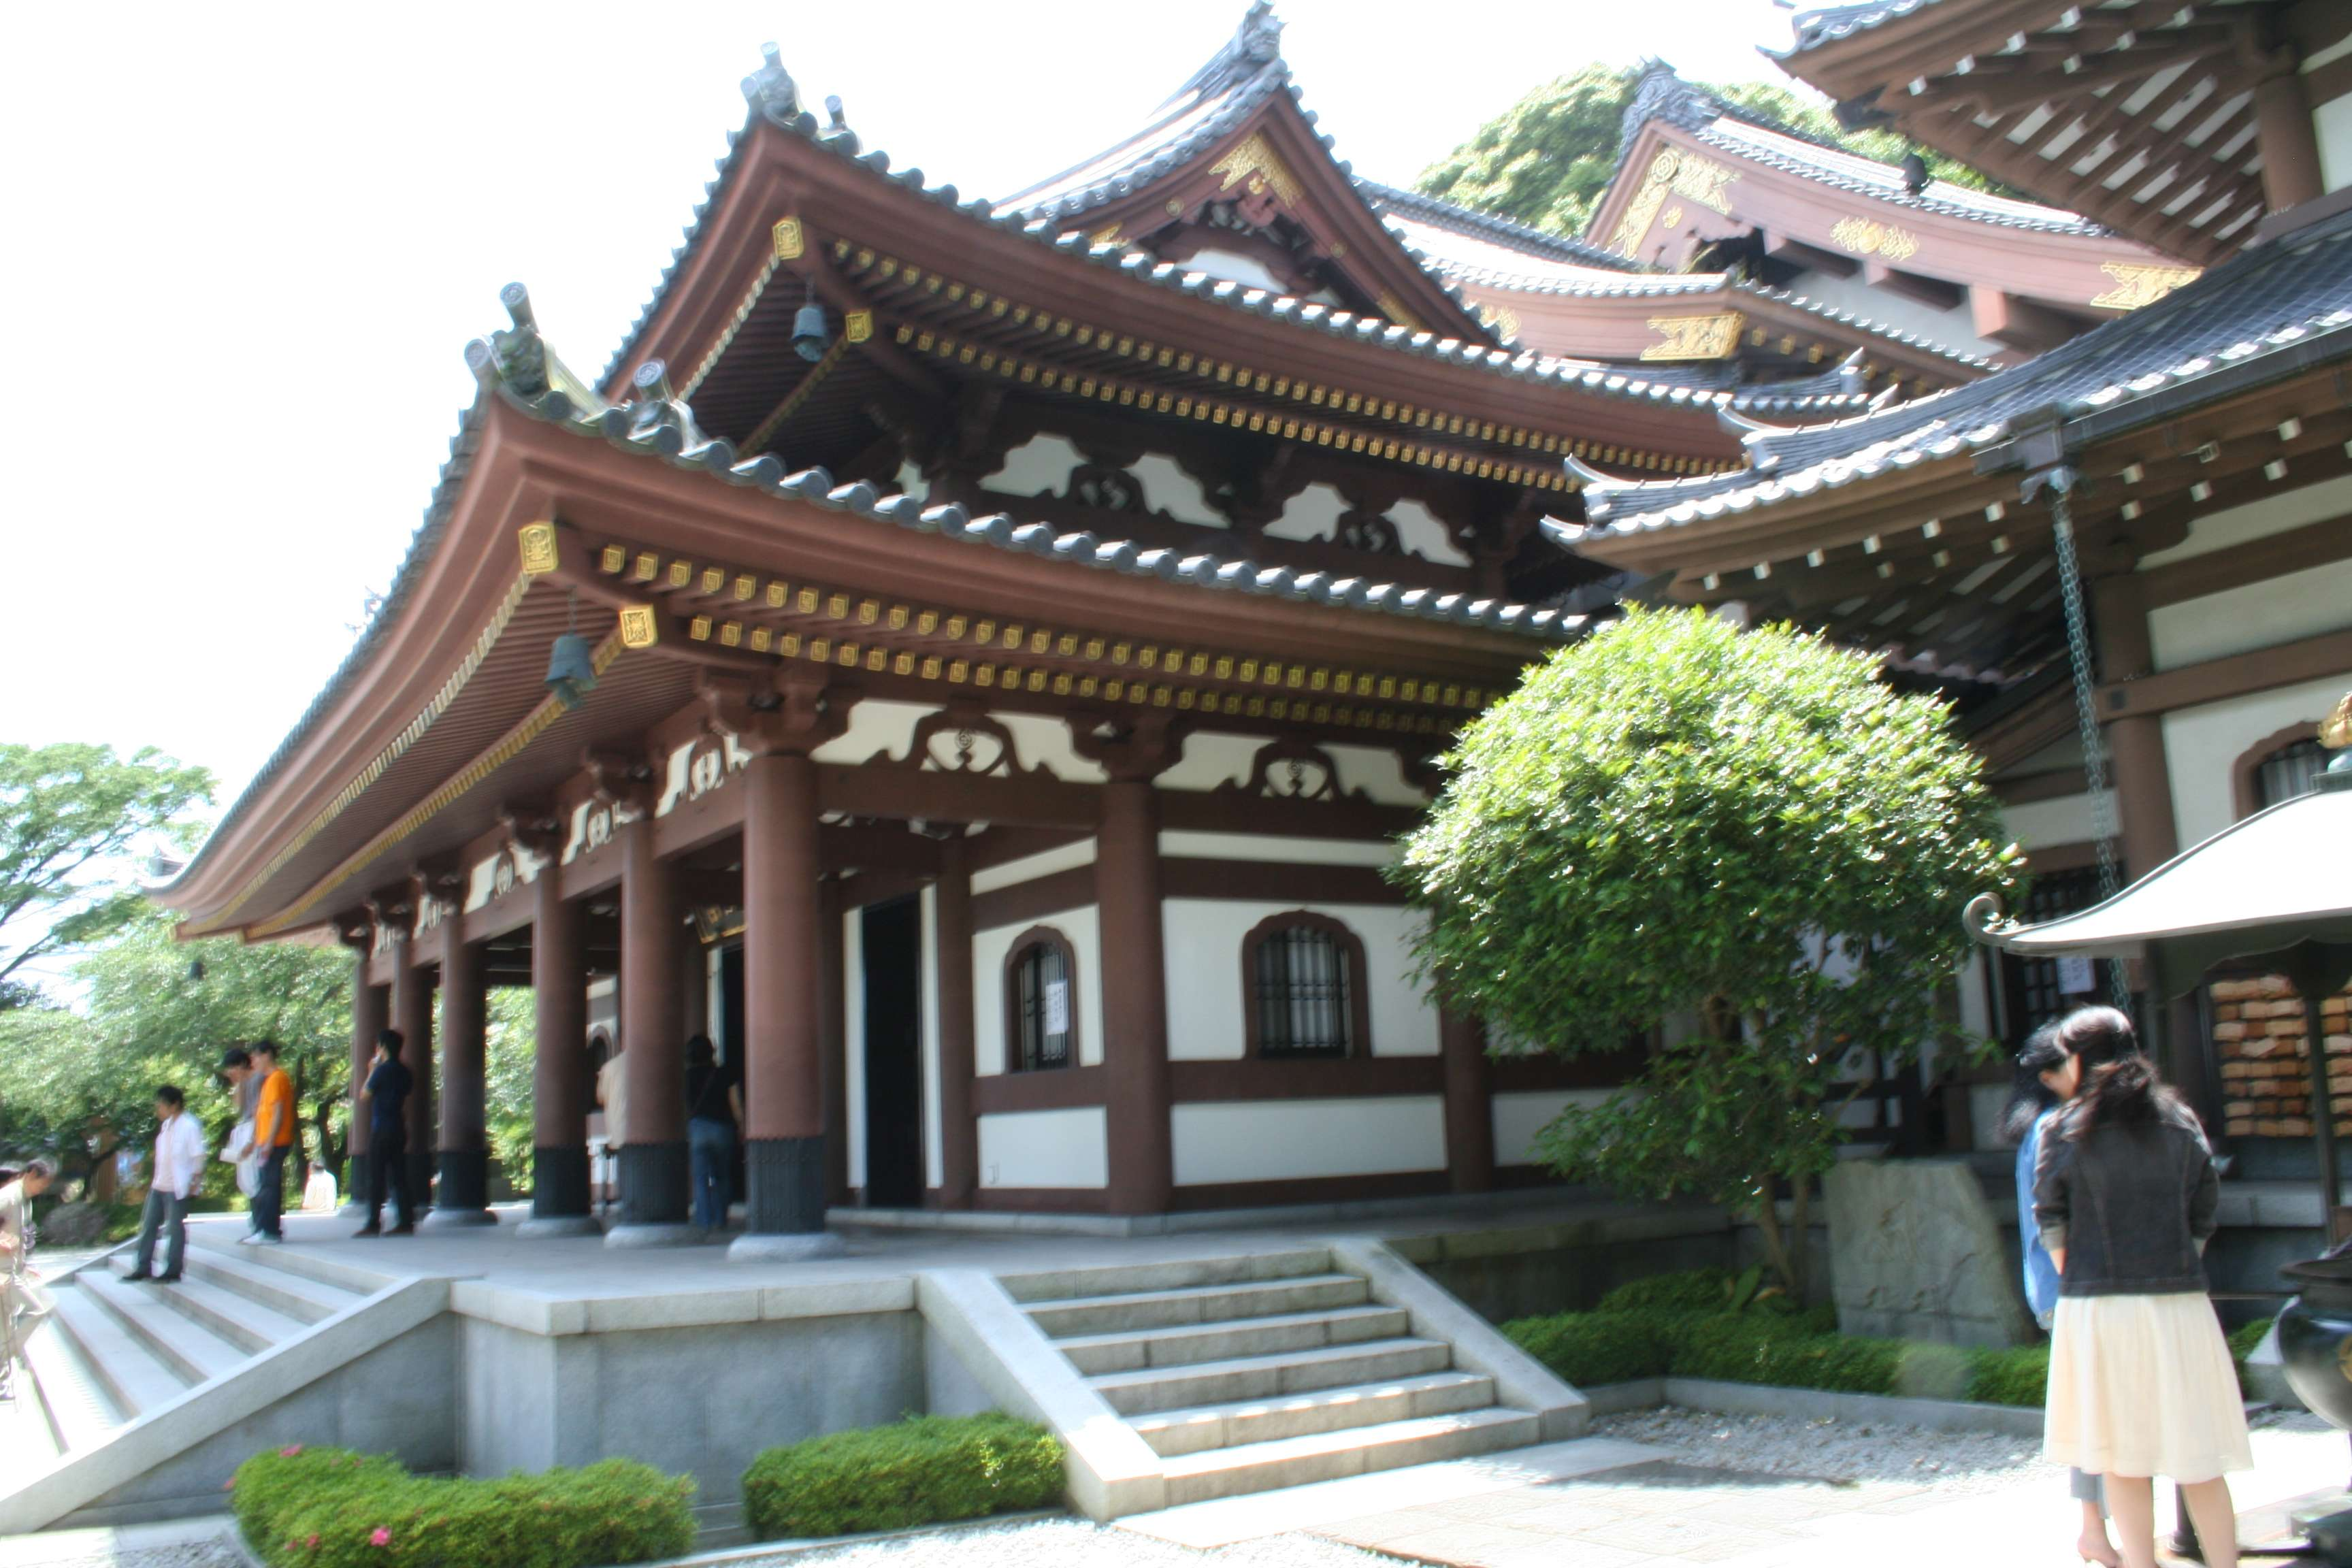 File:Hasedera Temple.jpg - Wikipedia